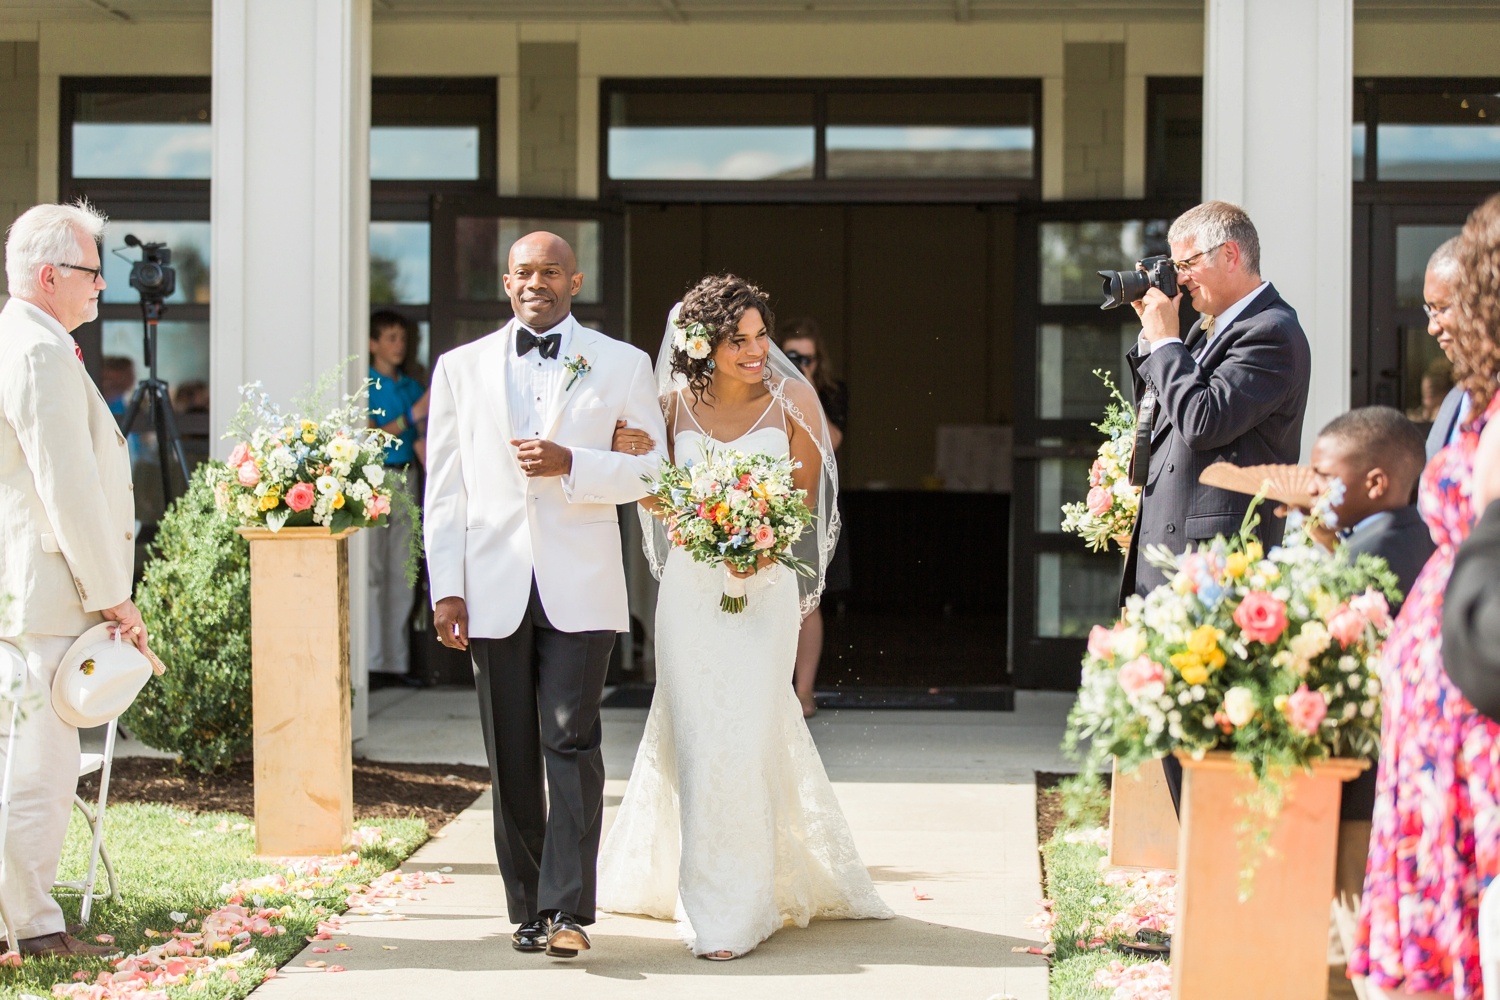 Wedding-at-The-Savannah-Center-West-Chester-Ohio-Photography-Chloe-Luka-Photography_7485.jpg